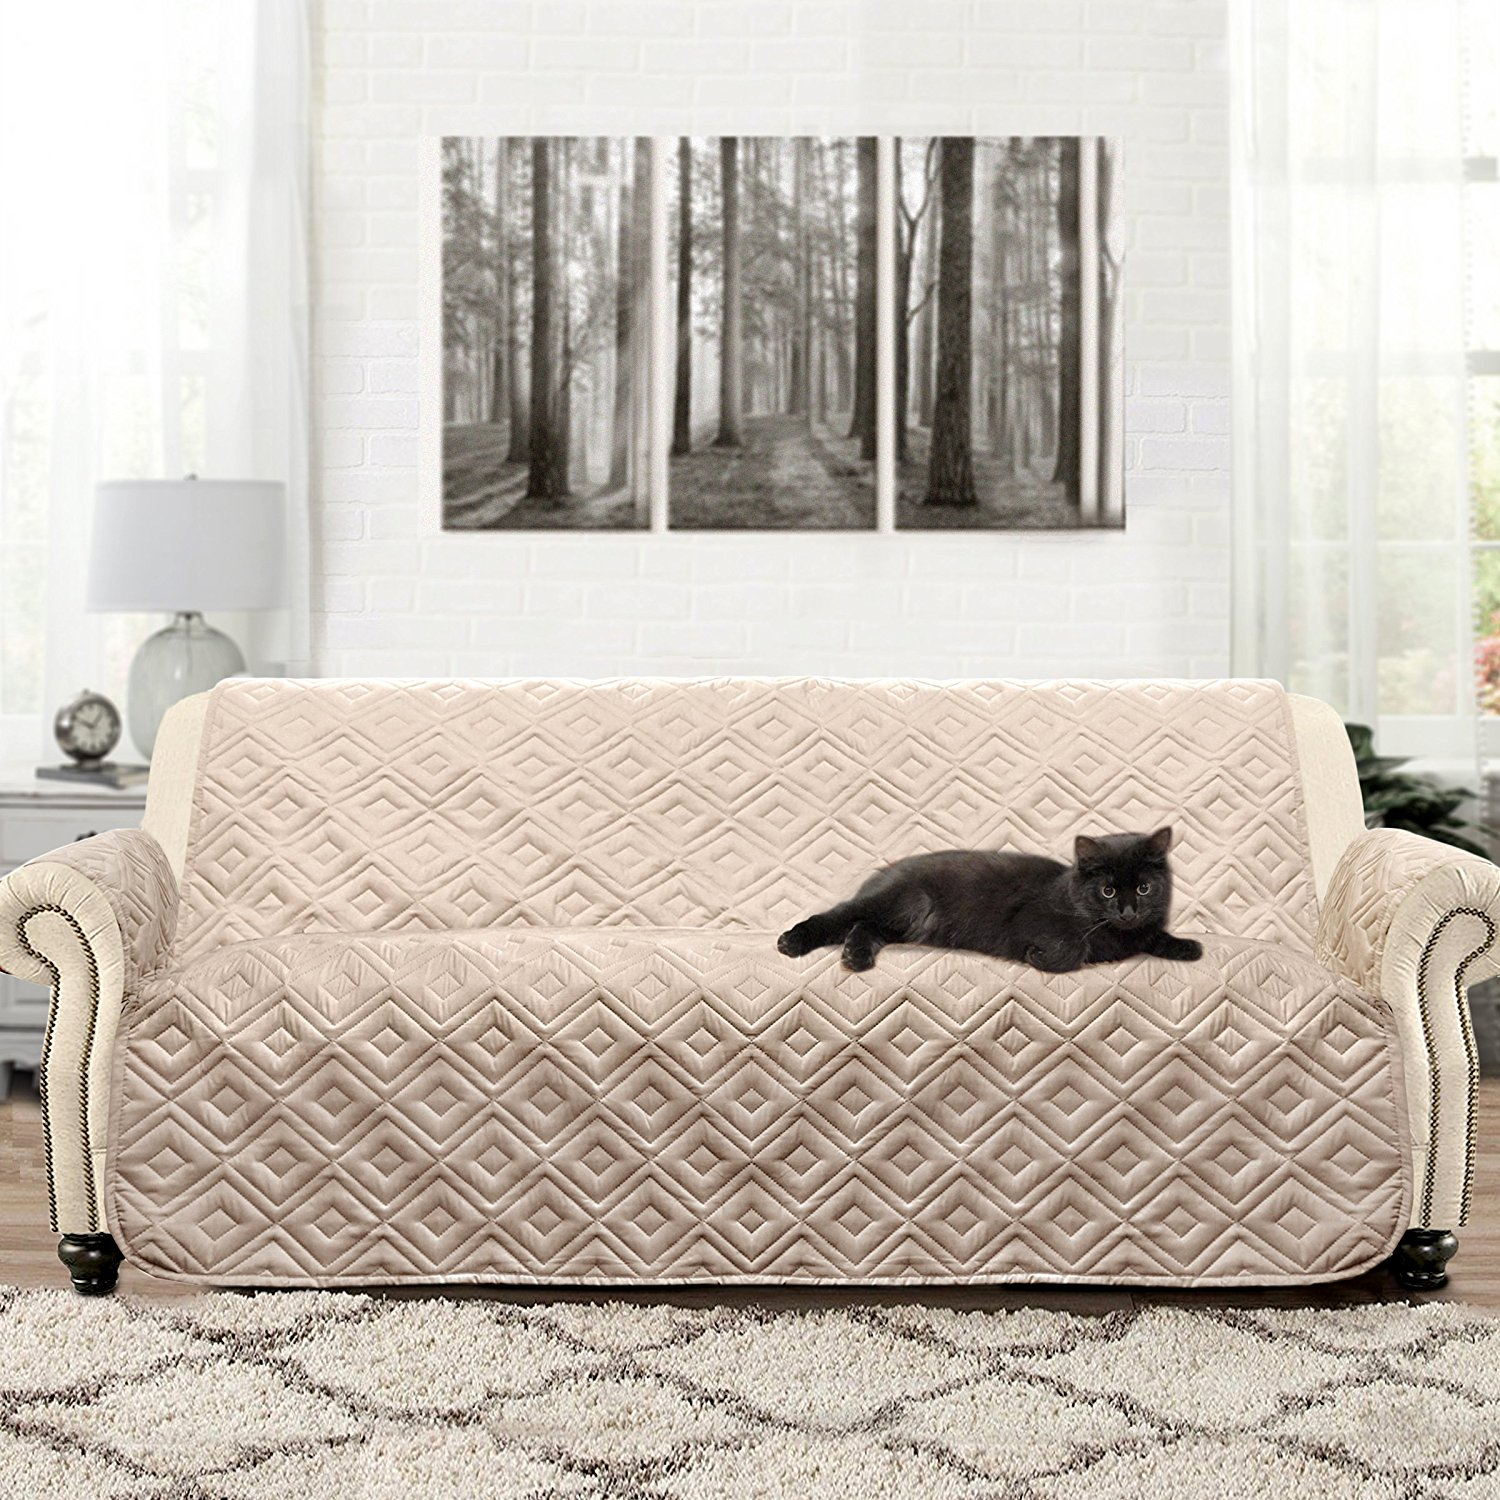 Beau DriftAway Water Resistant Quilted Furniture Protector Sofa Cover Slipcover  For Dogs, Kids, Pets.   Walmart.com